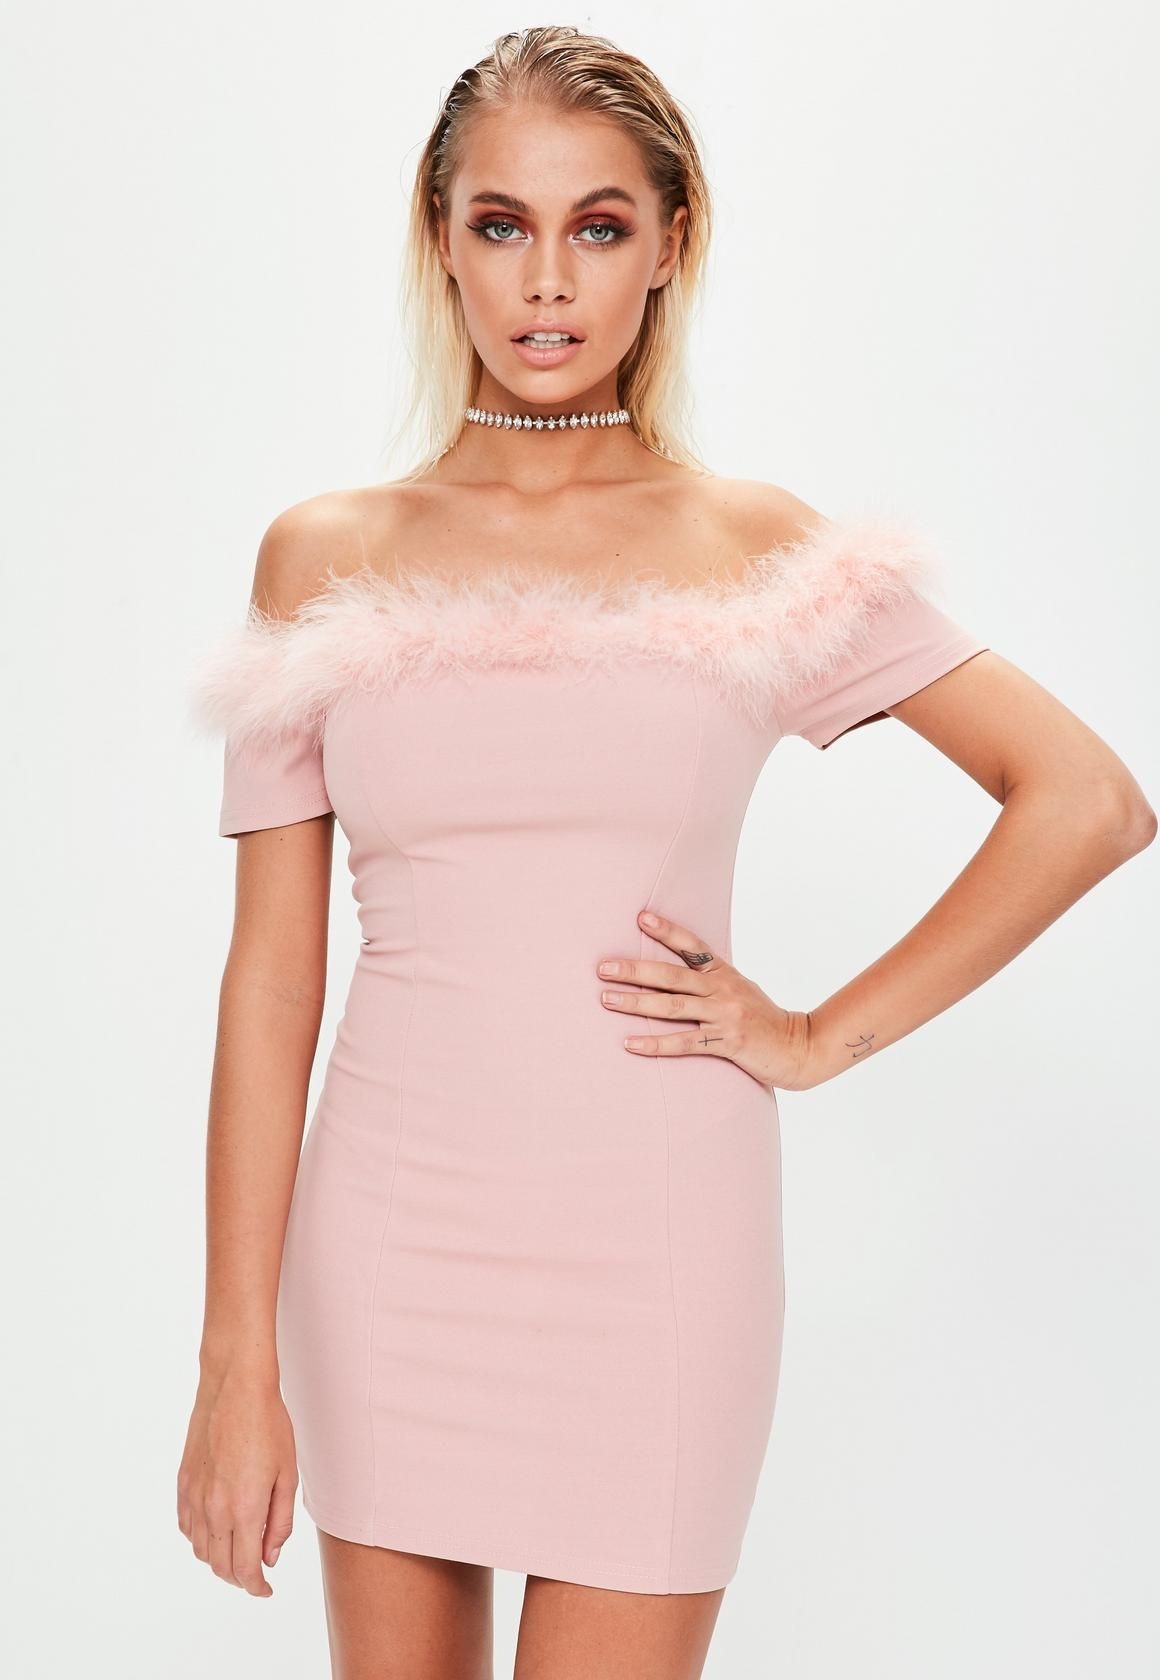 Missguided - Pink Crepe Feather Trim Bardot Bodycon Dress | clothes ...